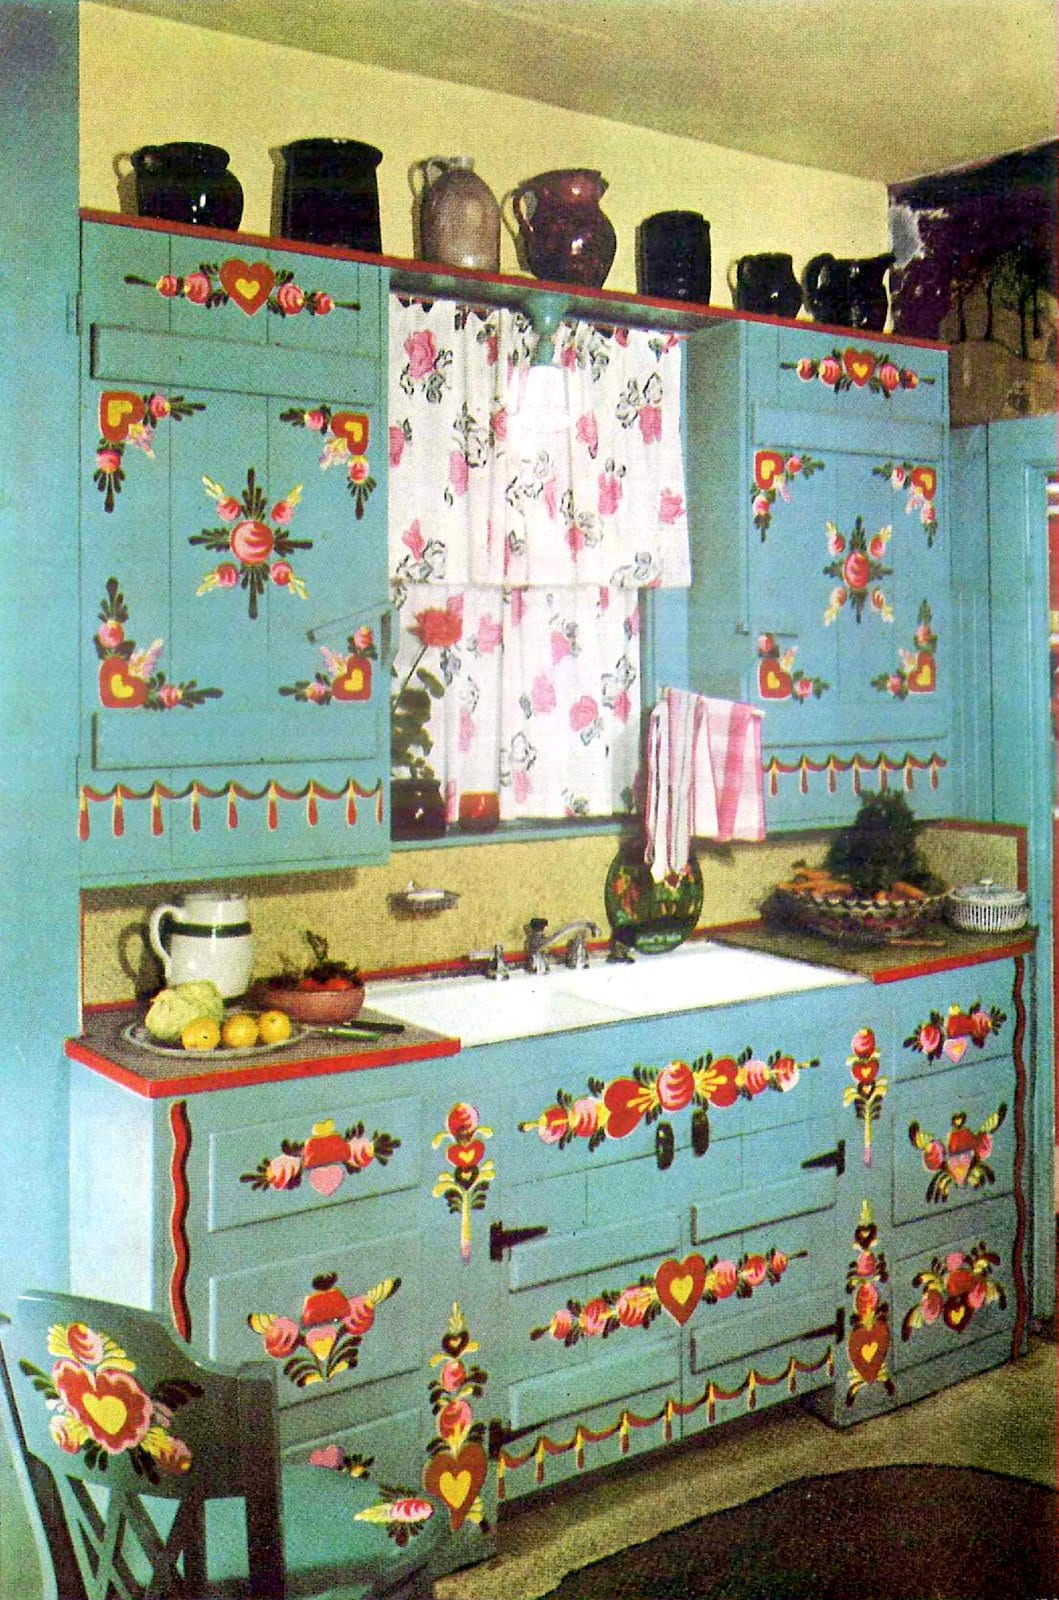 Restored kitchen cabinetry with retro Pennsylvania Dutch folk-art style paintwork by Peter Hunt